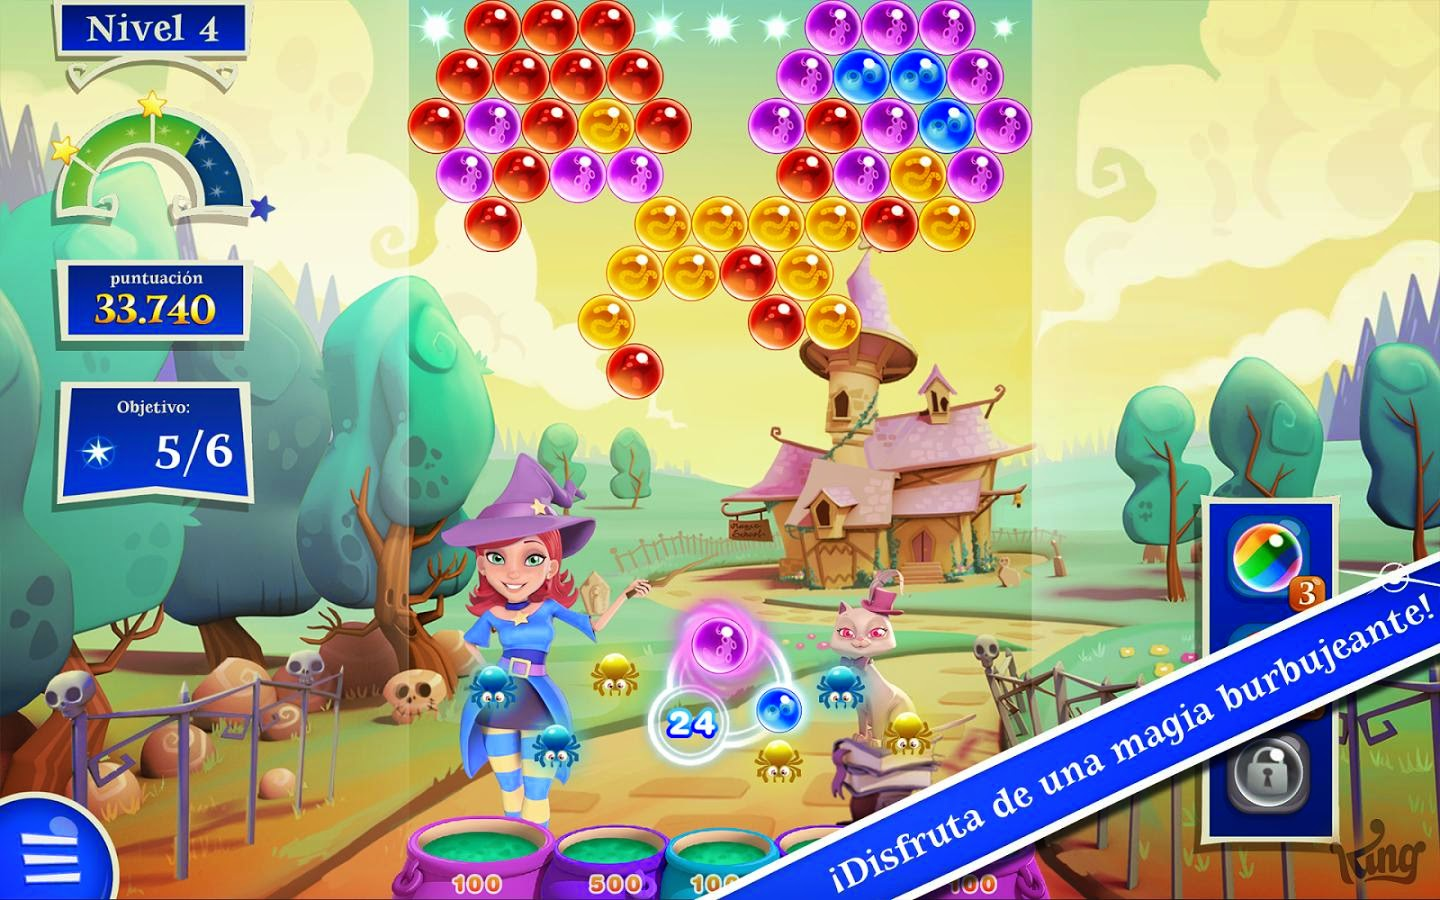 Buble Witch Saga 2 para Android, iPhone e iPad, vuelven los creadores de Candy Crush Saga